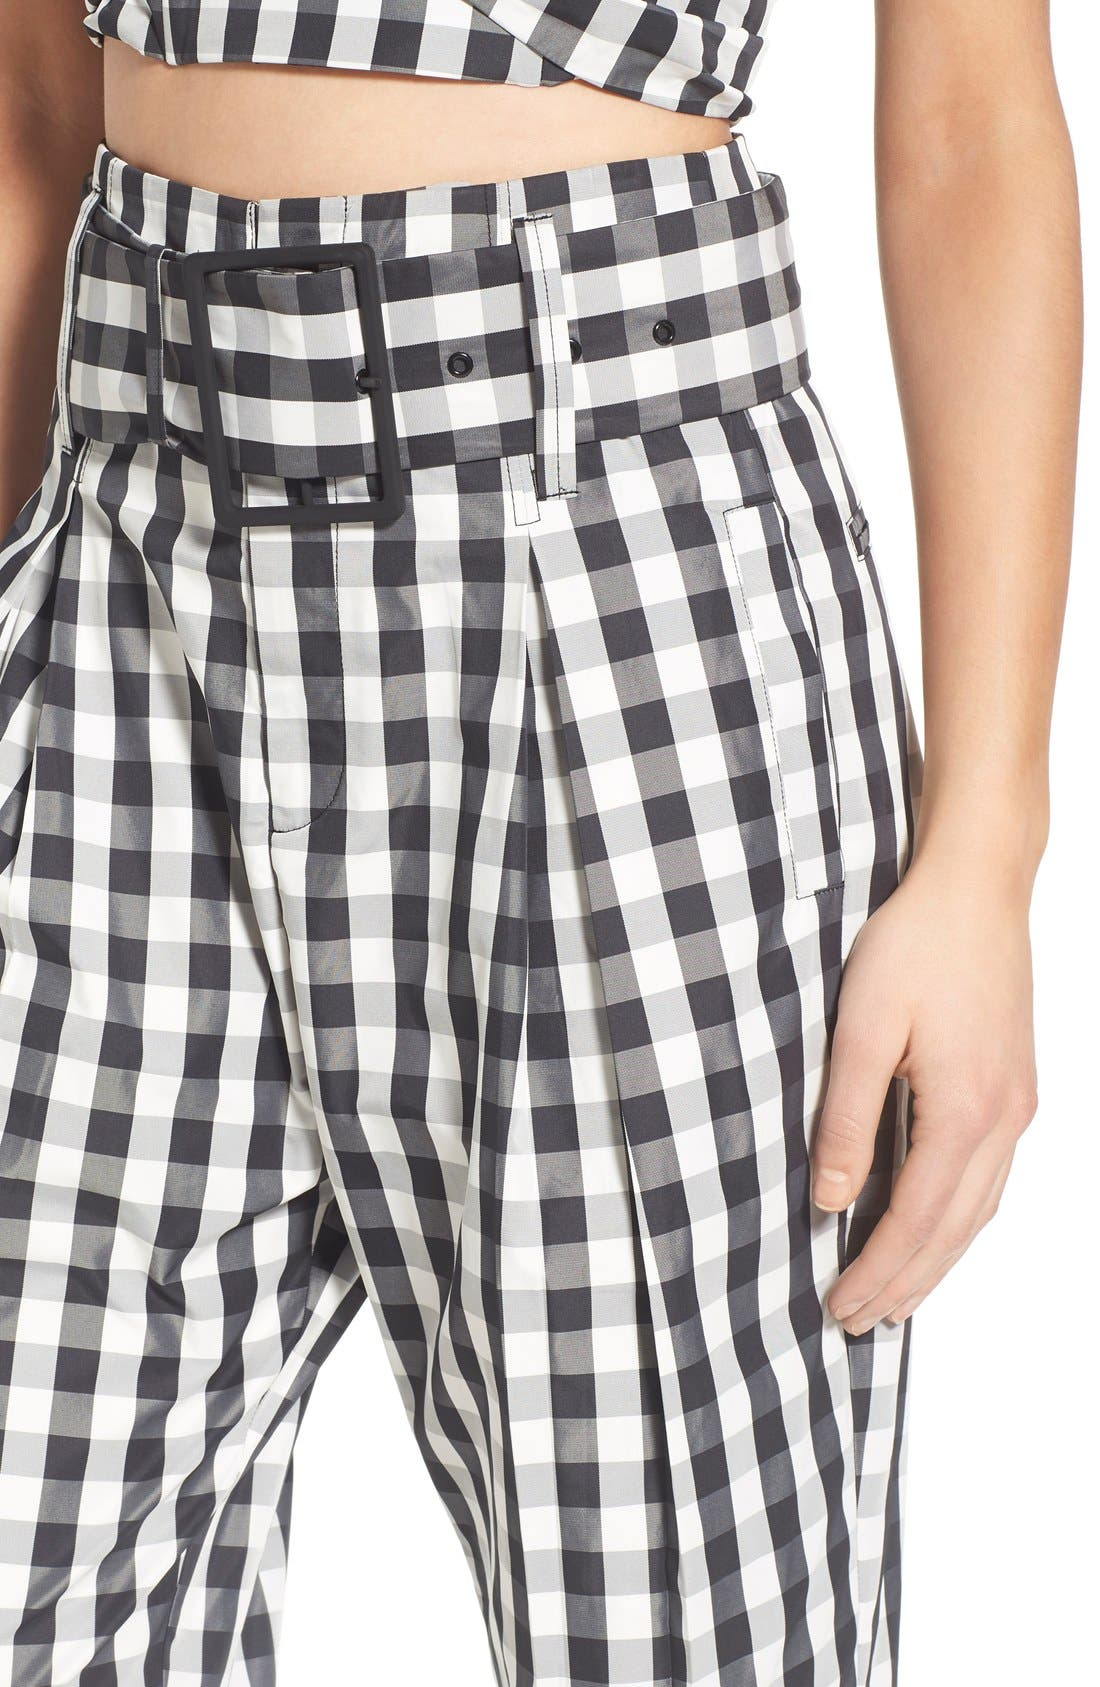 KENDALL + KYLIE, Gingham High Rise Crop Pants, Alternate thumbnail 2, color, 003